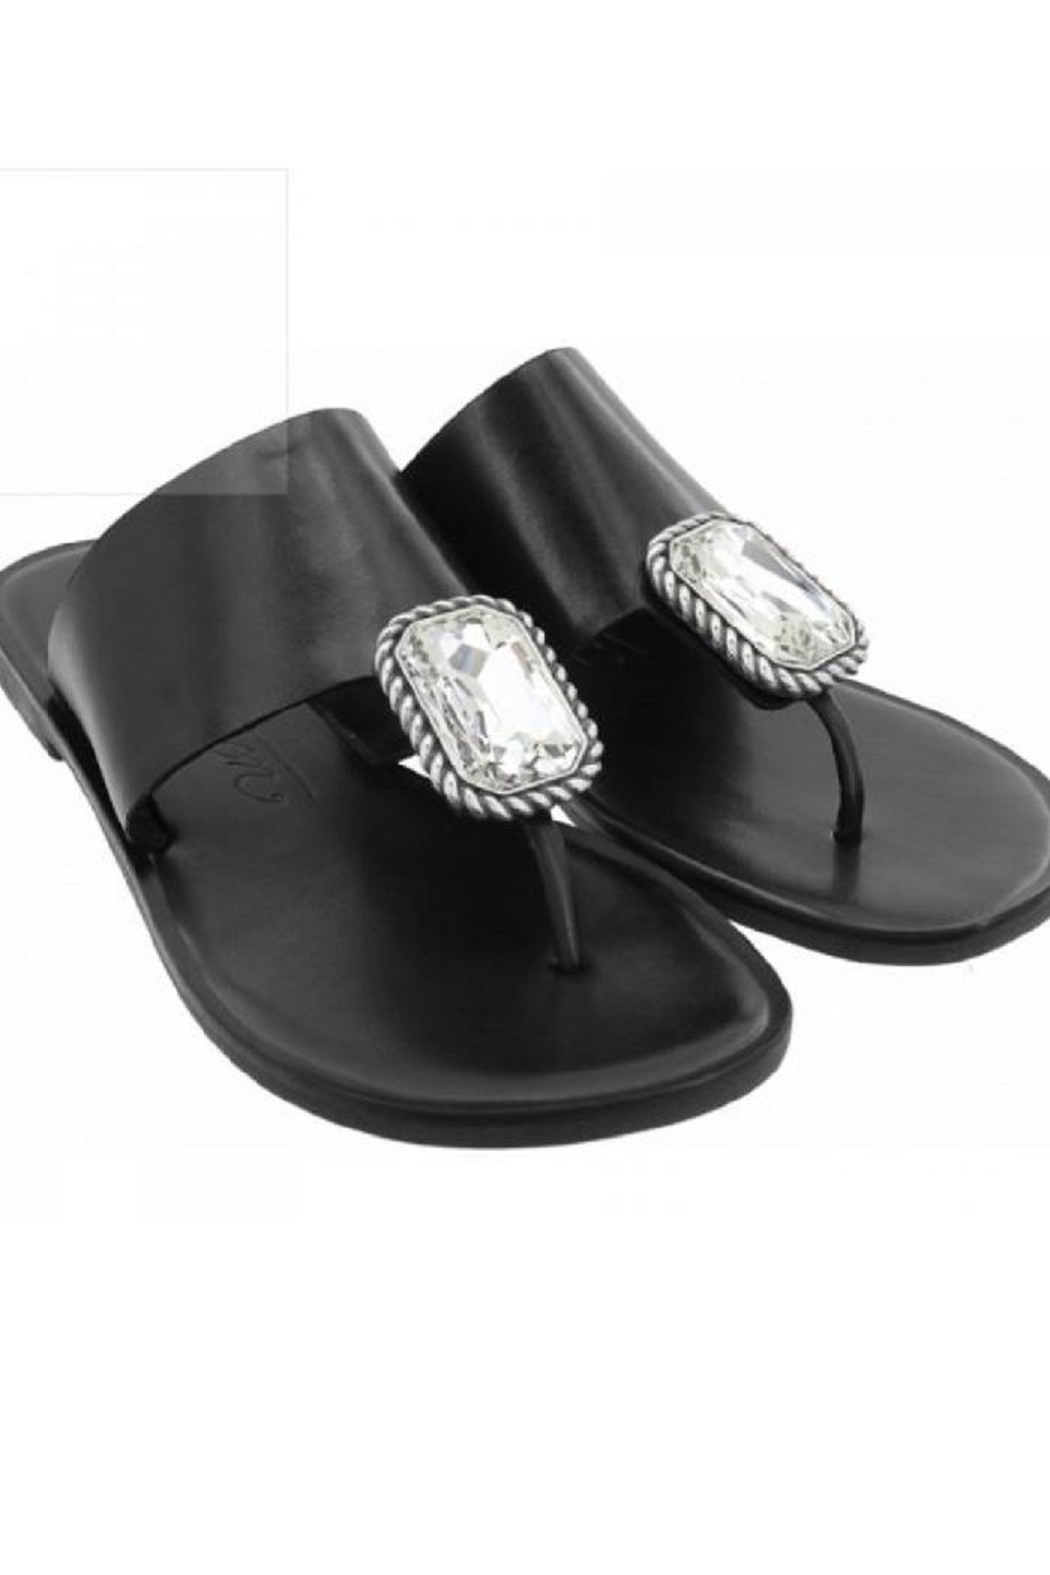 9197d0df4 Brighton Allure Thong Sandals from Texas by Rock2Royal Boutique ...